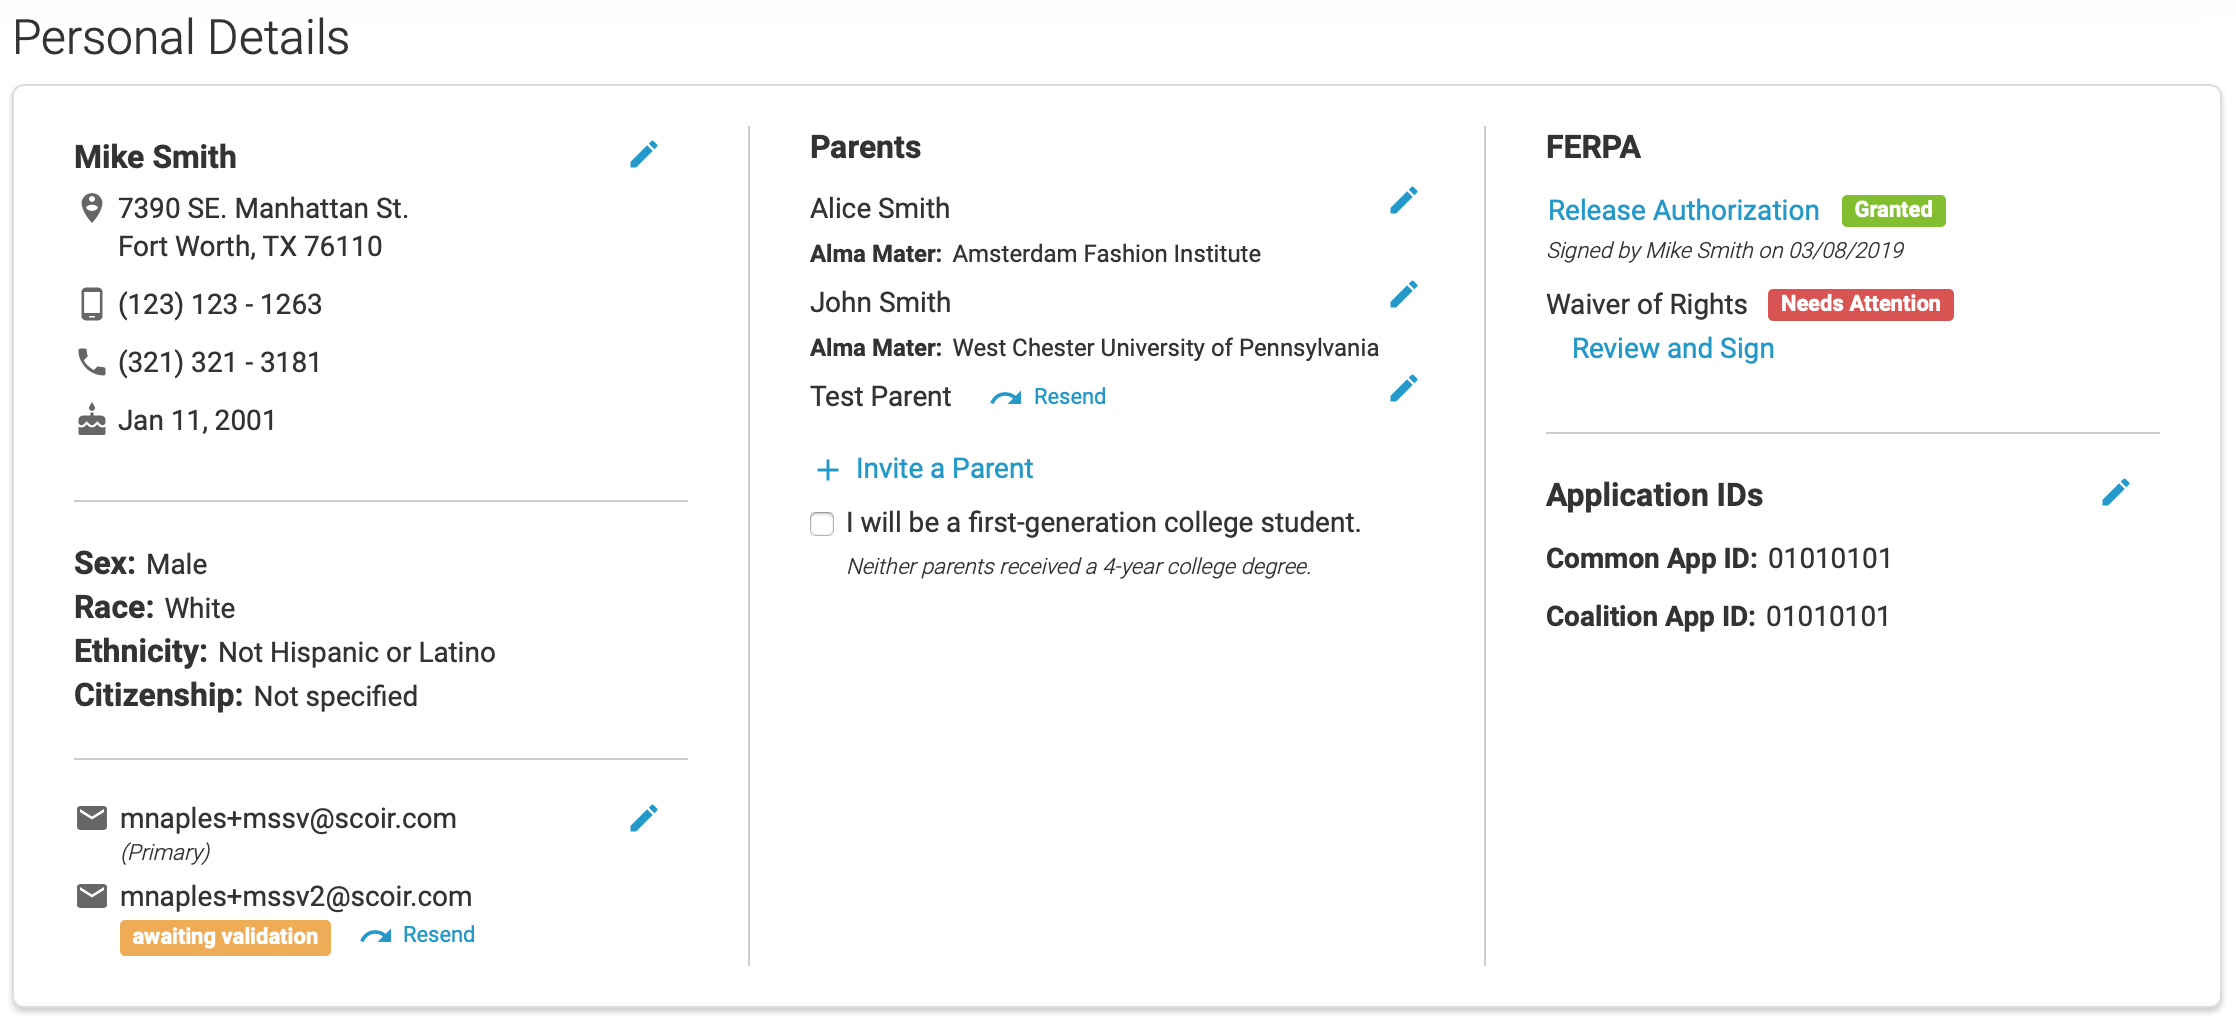 _student_-student-profile-personal-details.png